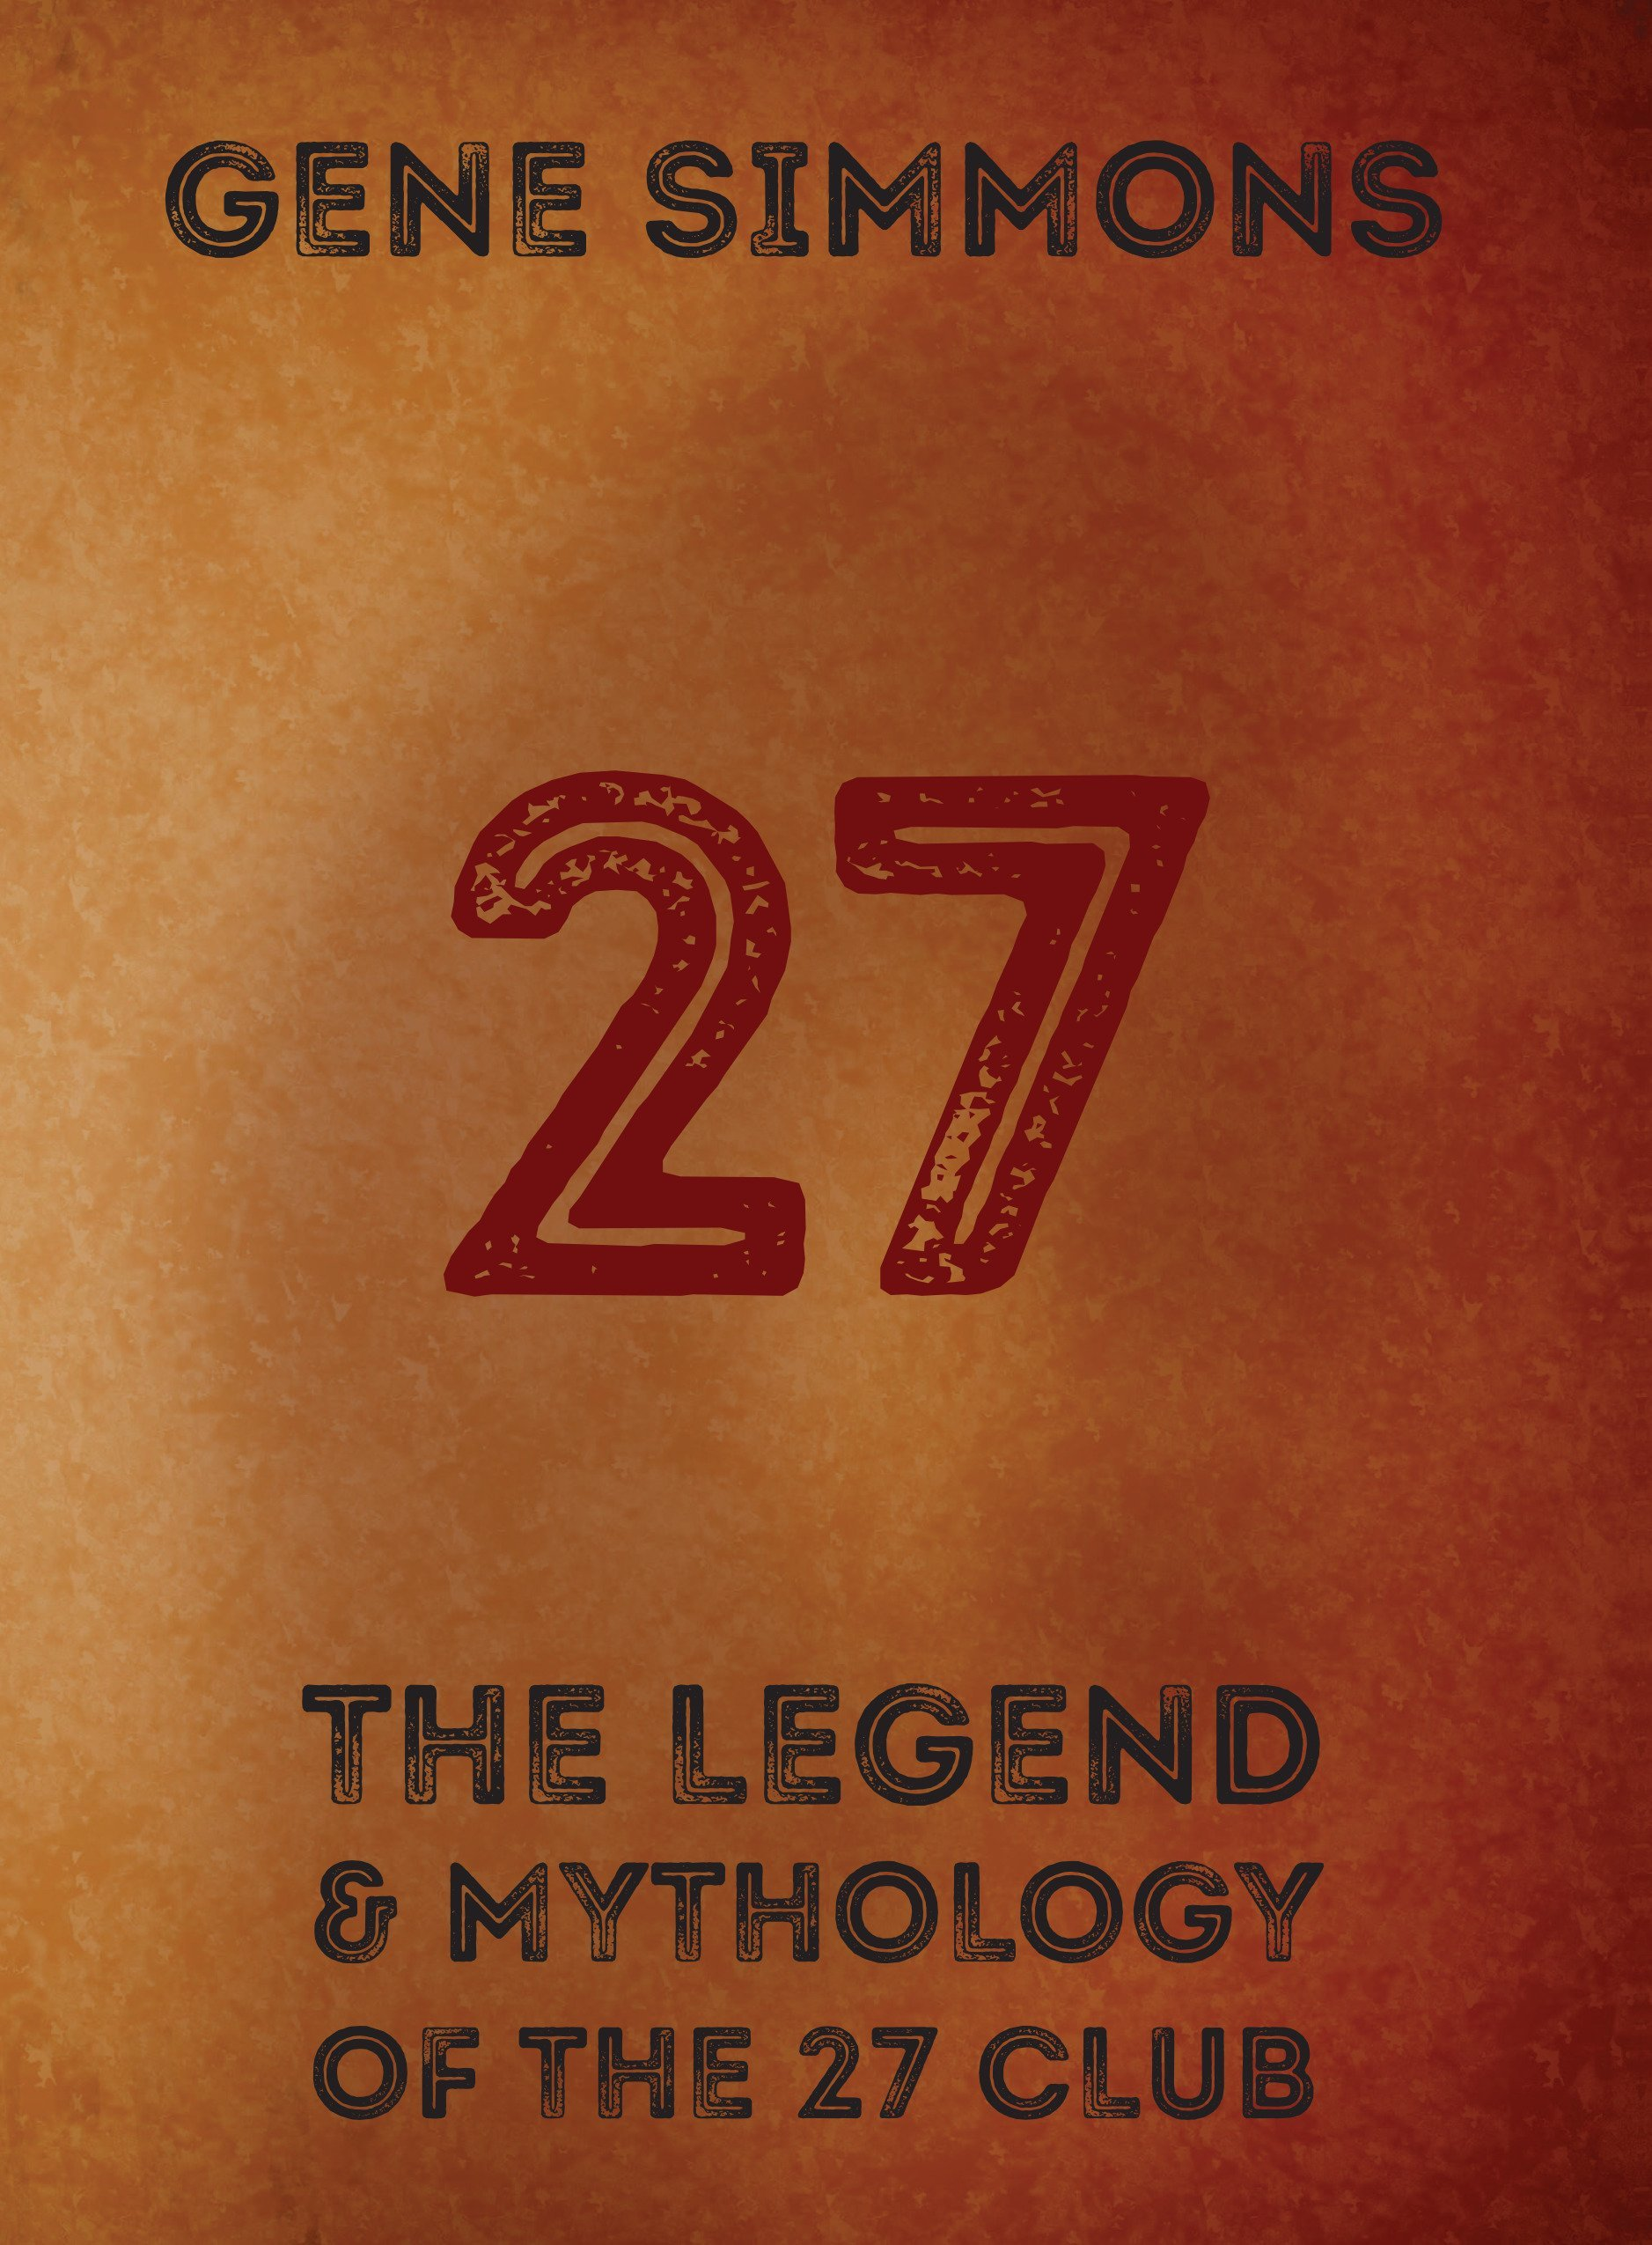 27: The Legend and Mythology of the 27 Club Hardcover – September 12, 2018 Gene Simmons powerHouse Books 1576878864 Genres & Styles - Rock